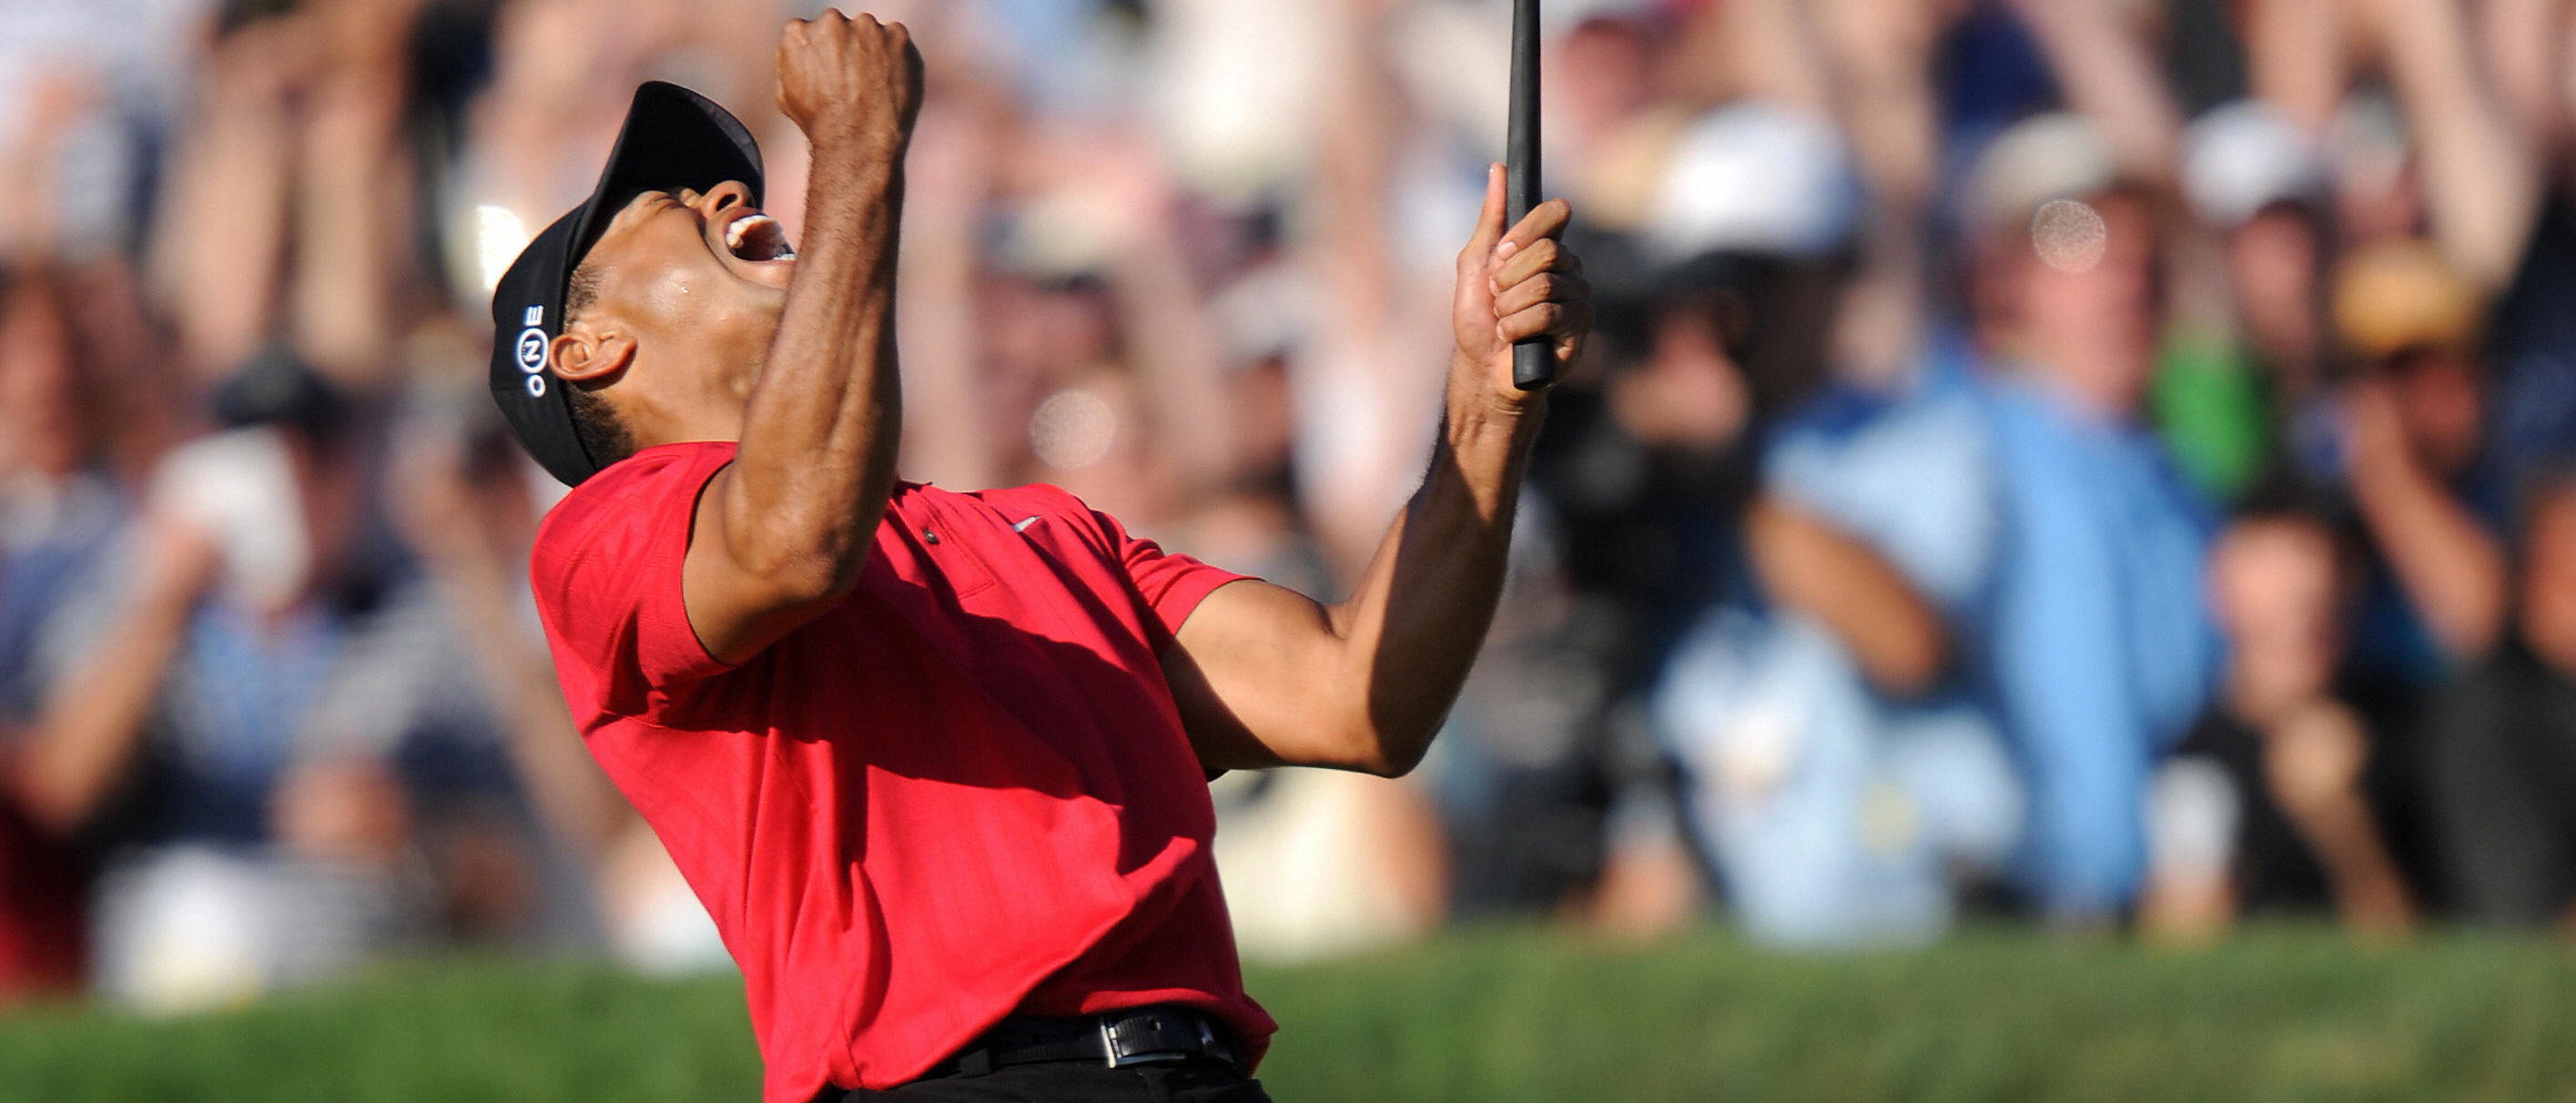 Tiger Woods of the US celebrates his birdie putt on the 18th hole in the fourth round of the 108th U.S. Open golf tournament forcing a playoff with compatriot Rocco Mediate at Torrey Pines Golf Course in San Diego, California on June 15, 2008. (Photo: ROBYN BECK/AFP/Getty Images)